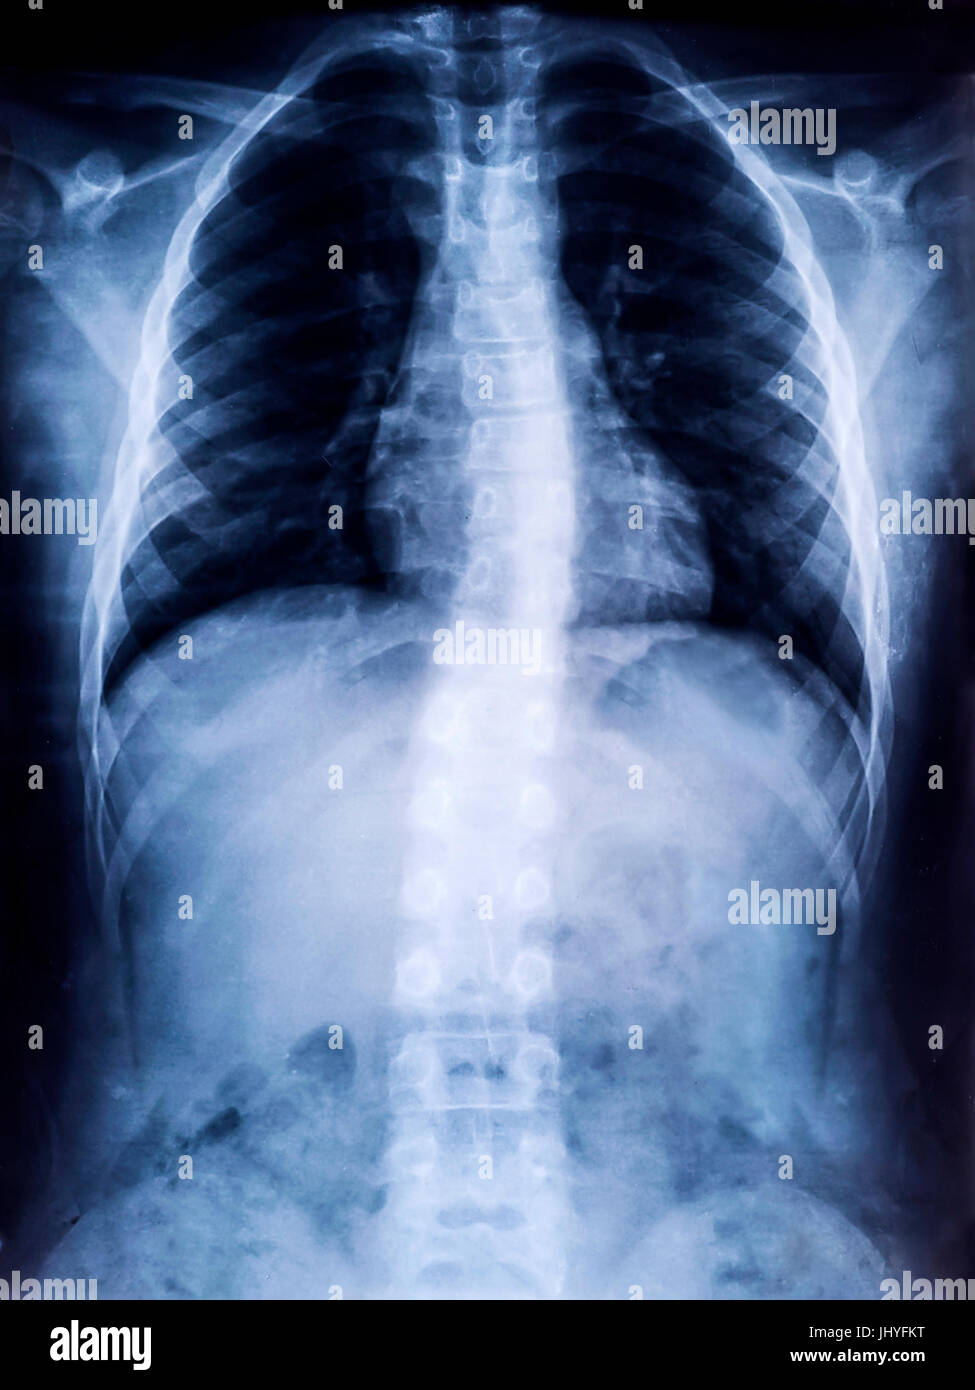 X-Ray Film of Human Spine Scoliosis for Medical Diagnosis - Stock Image